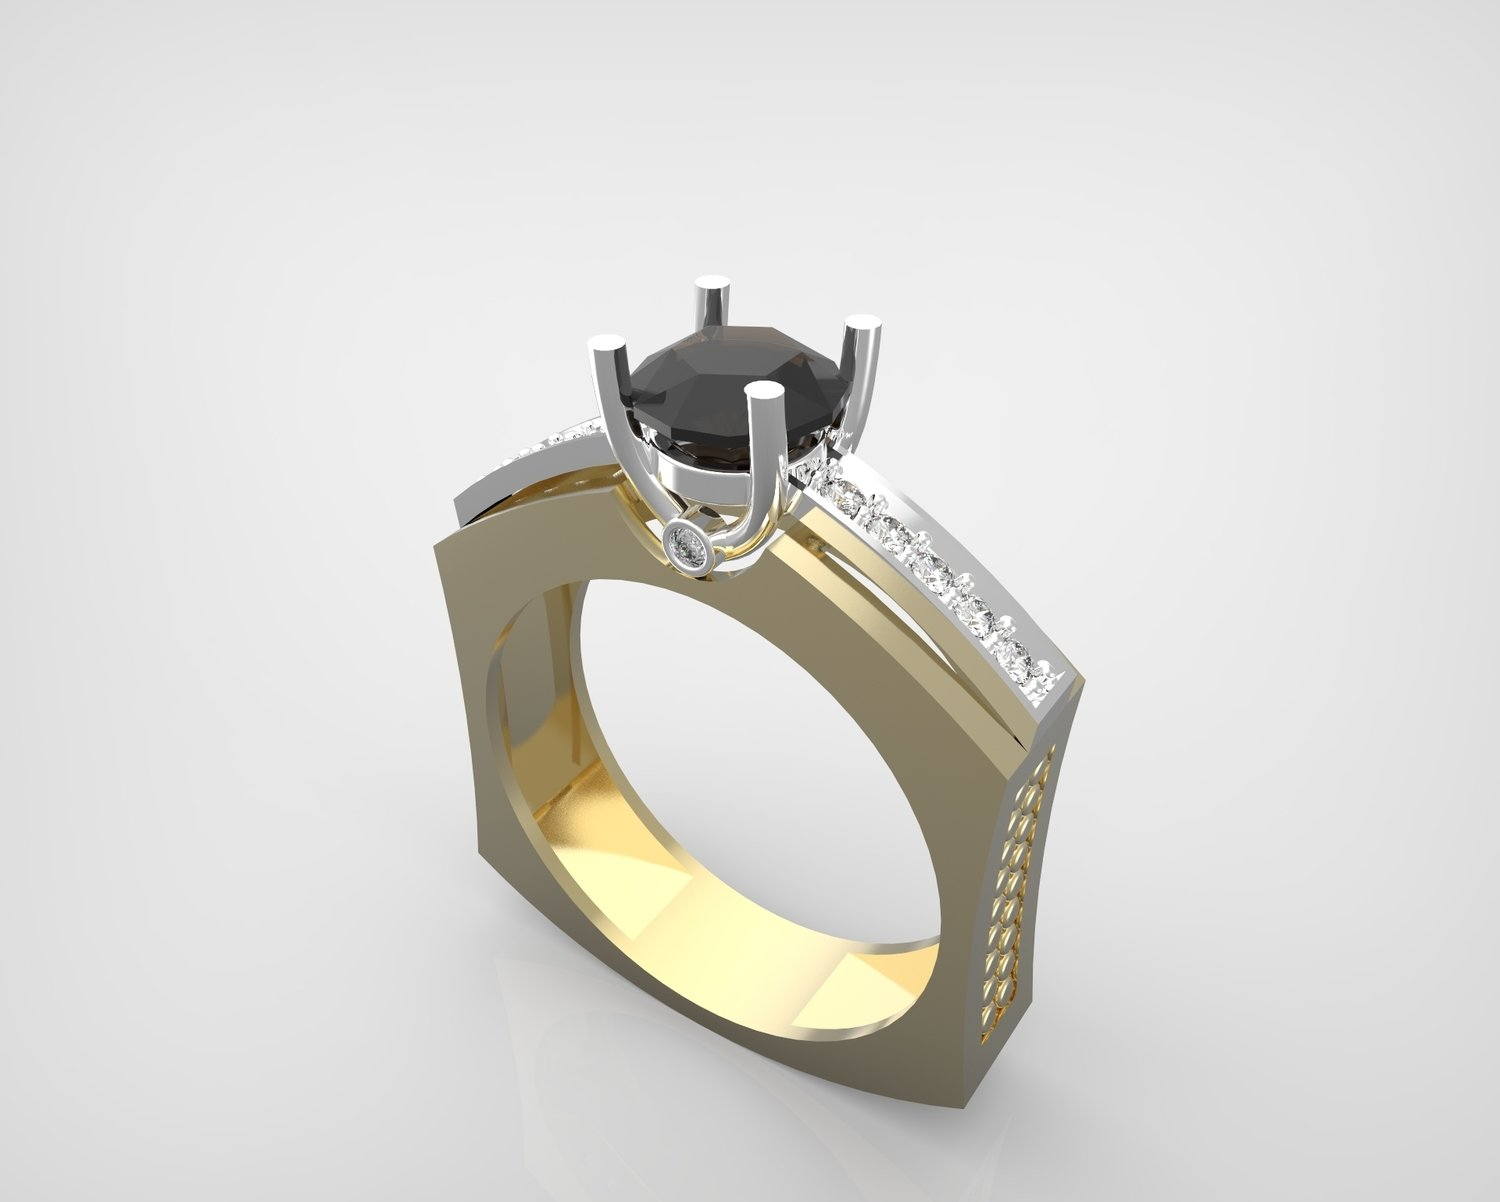 3D Model of Gold and Diamond Engagement Ring